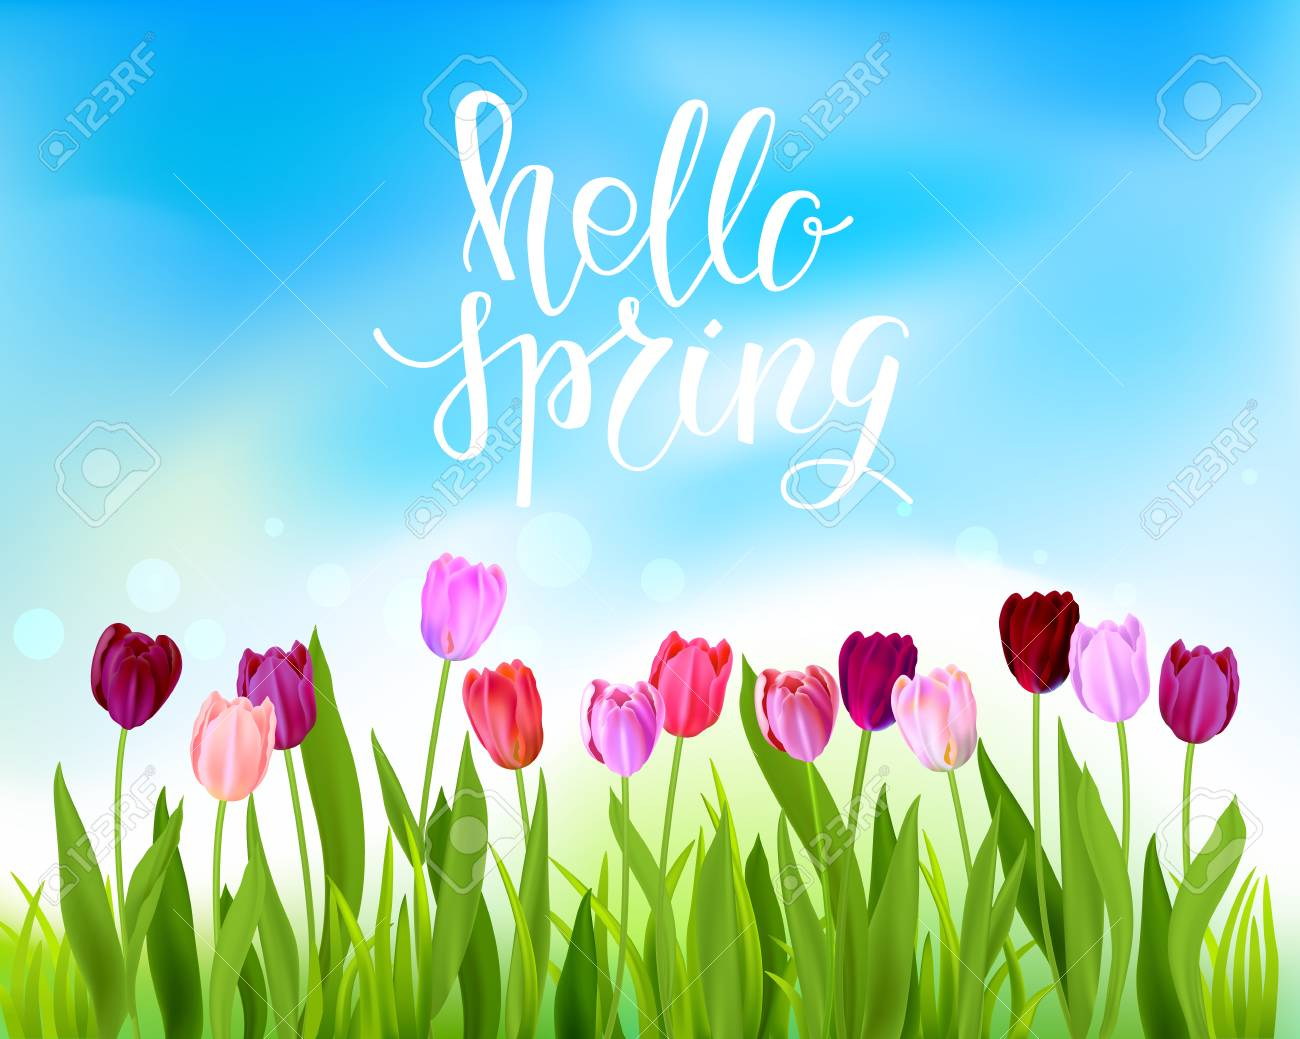 Hello Spring Banner With Tulips Flowers Vector Illustration Royalty Free Cliparts Vectors And Stock Illustration Image 96847554